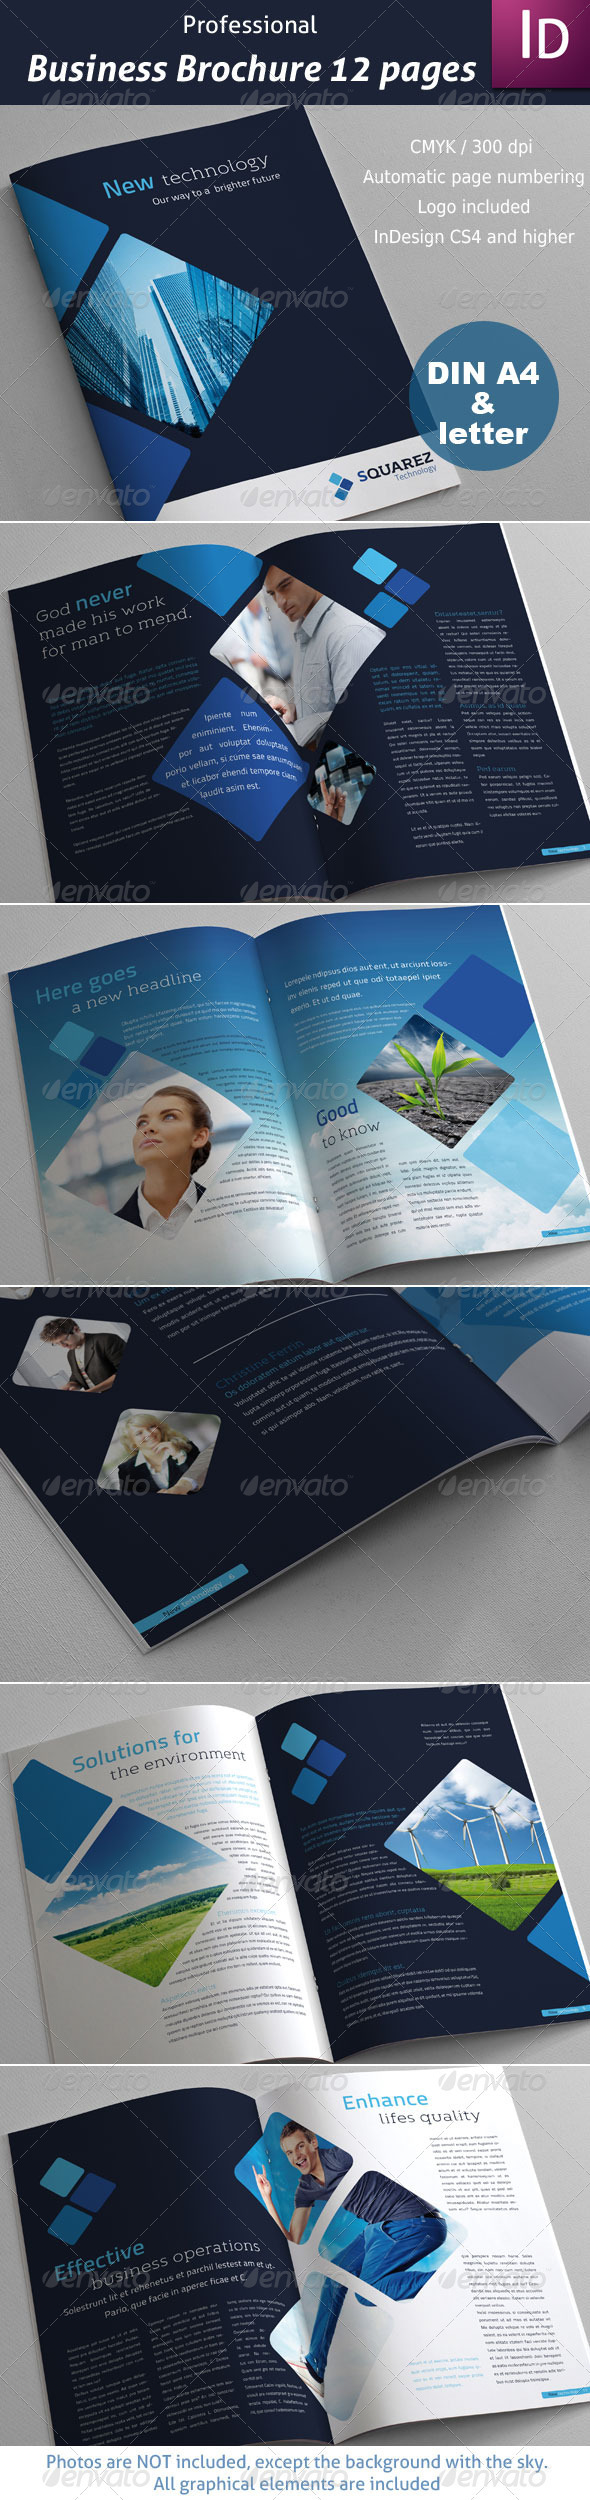 GraphicRiver Business Brochure 12 pages 2864390